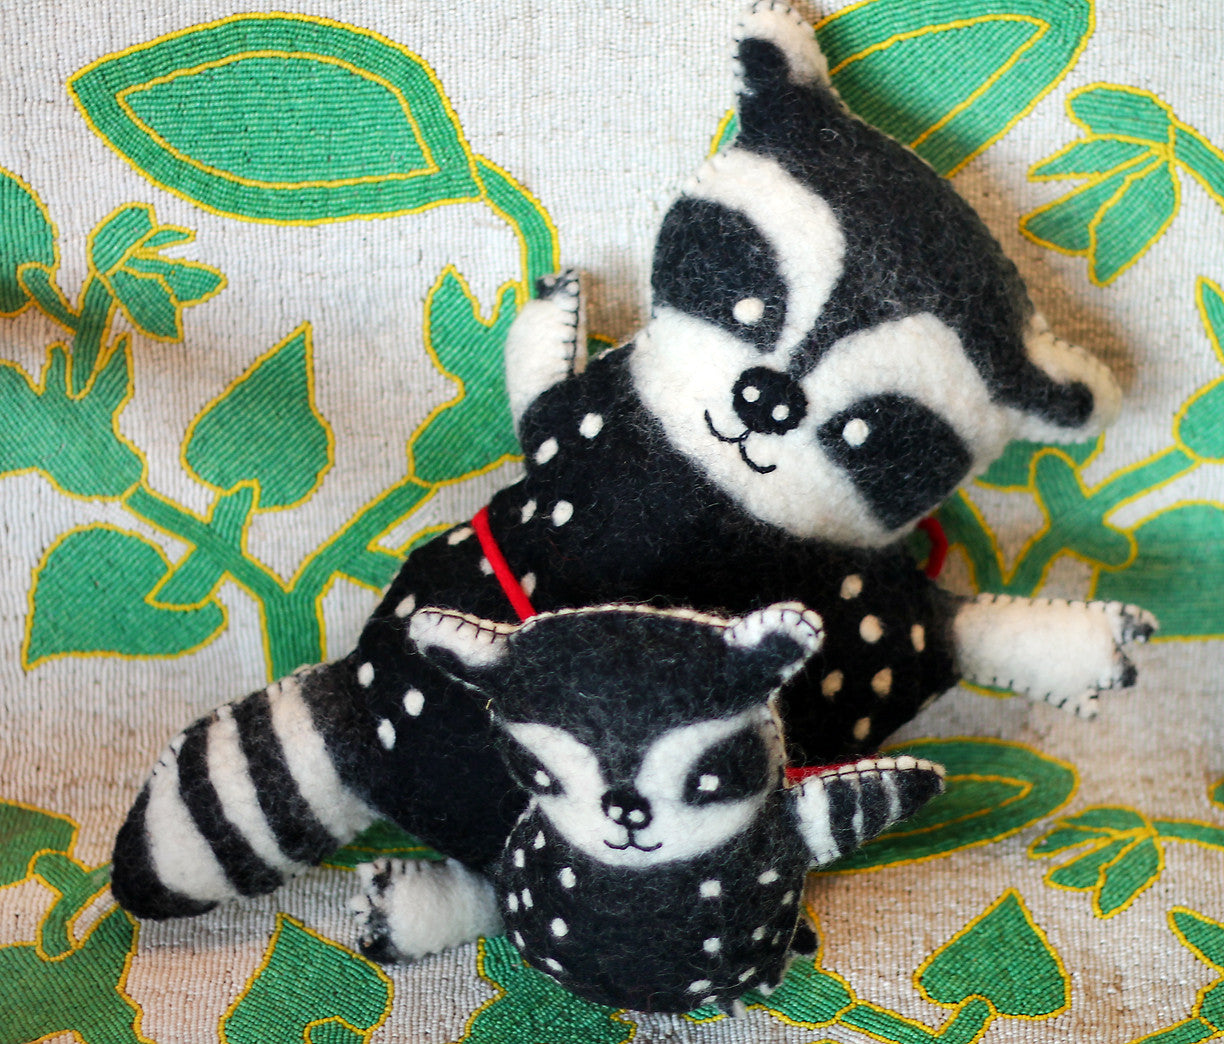 Racoon mother and child felted wool animals at The Sage Lifestyle - The Sage Lifestyle